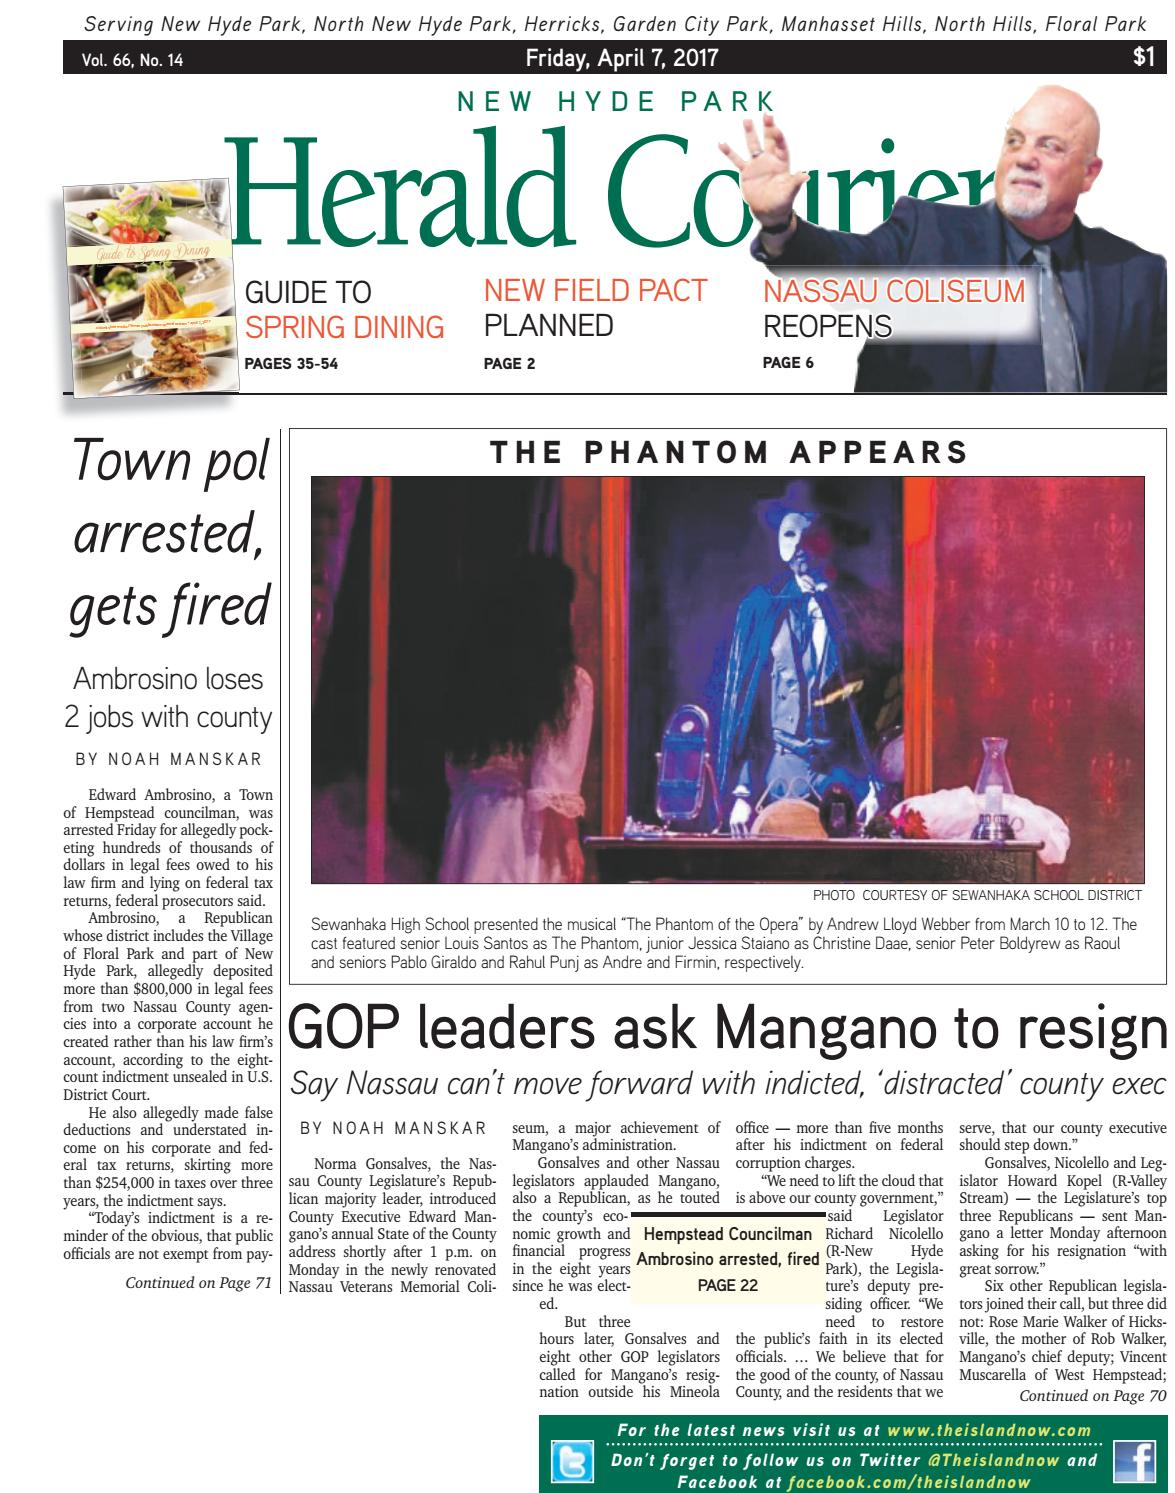 Herald courier 4 7 16 by The Island Now - issuu